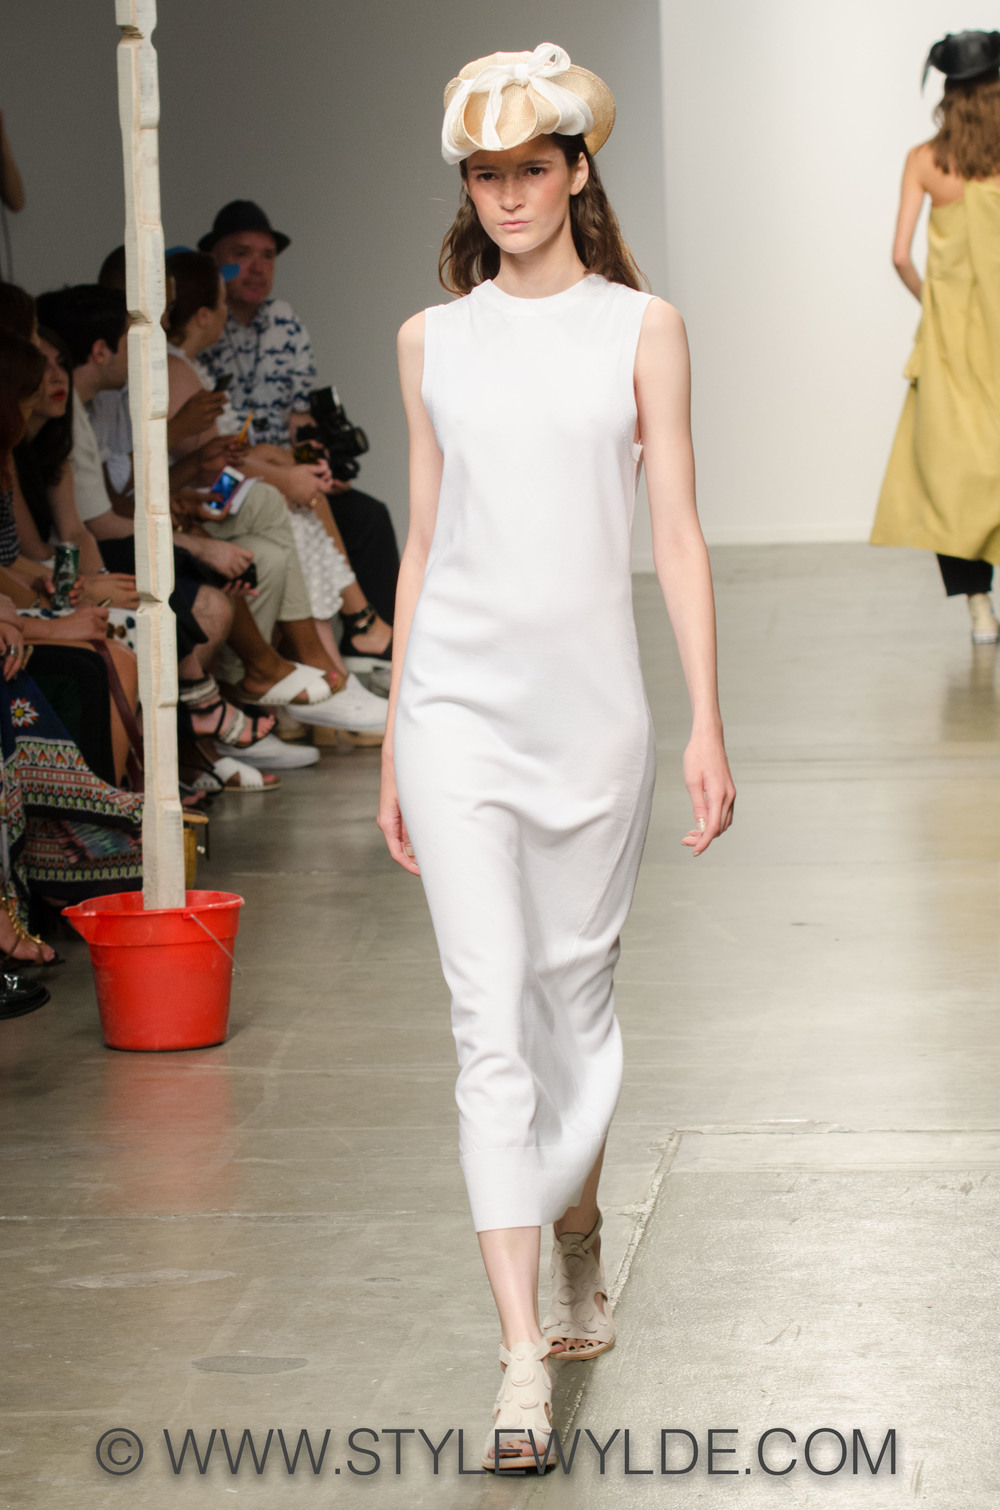 StyleWylde_Creatures_FOH_SS15 (46 of 49).jpg